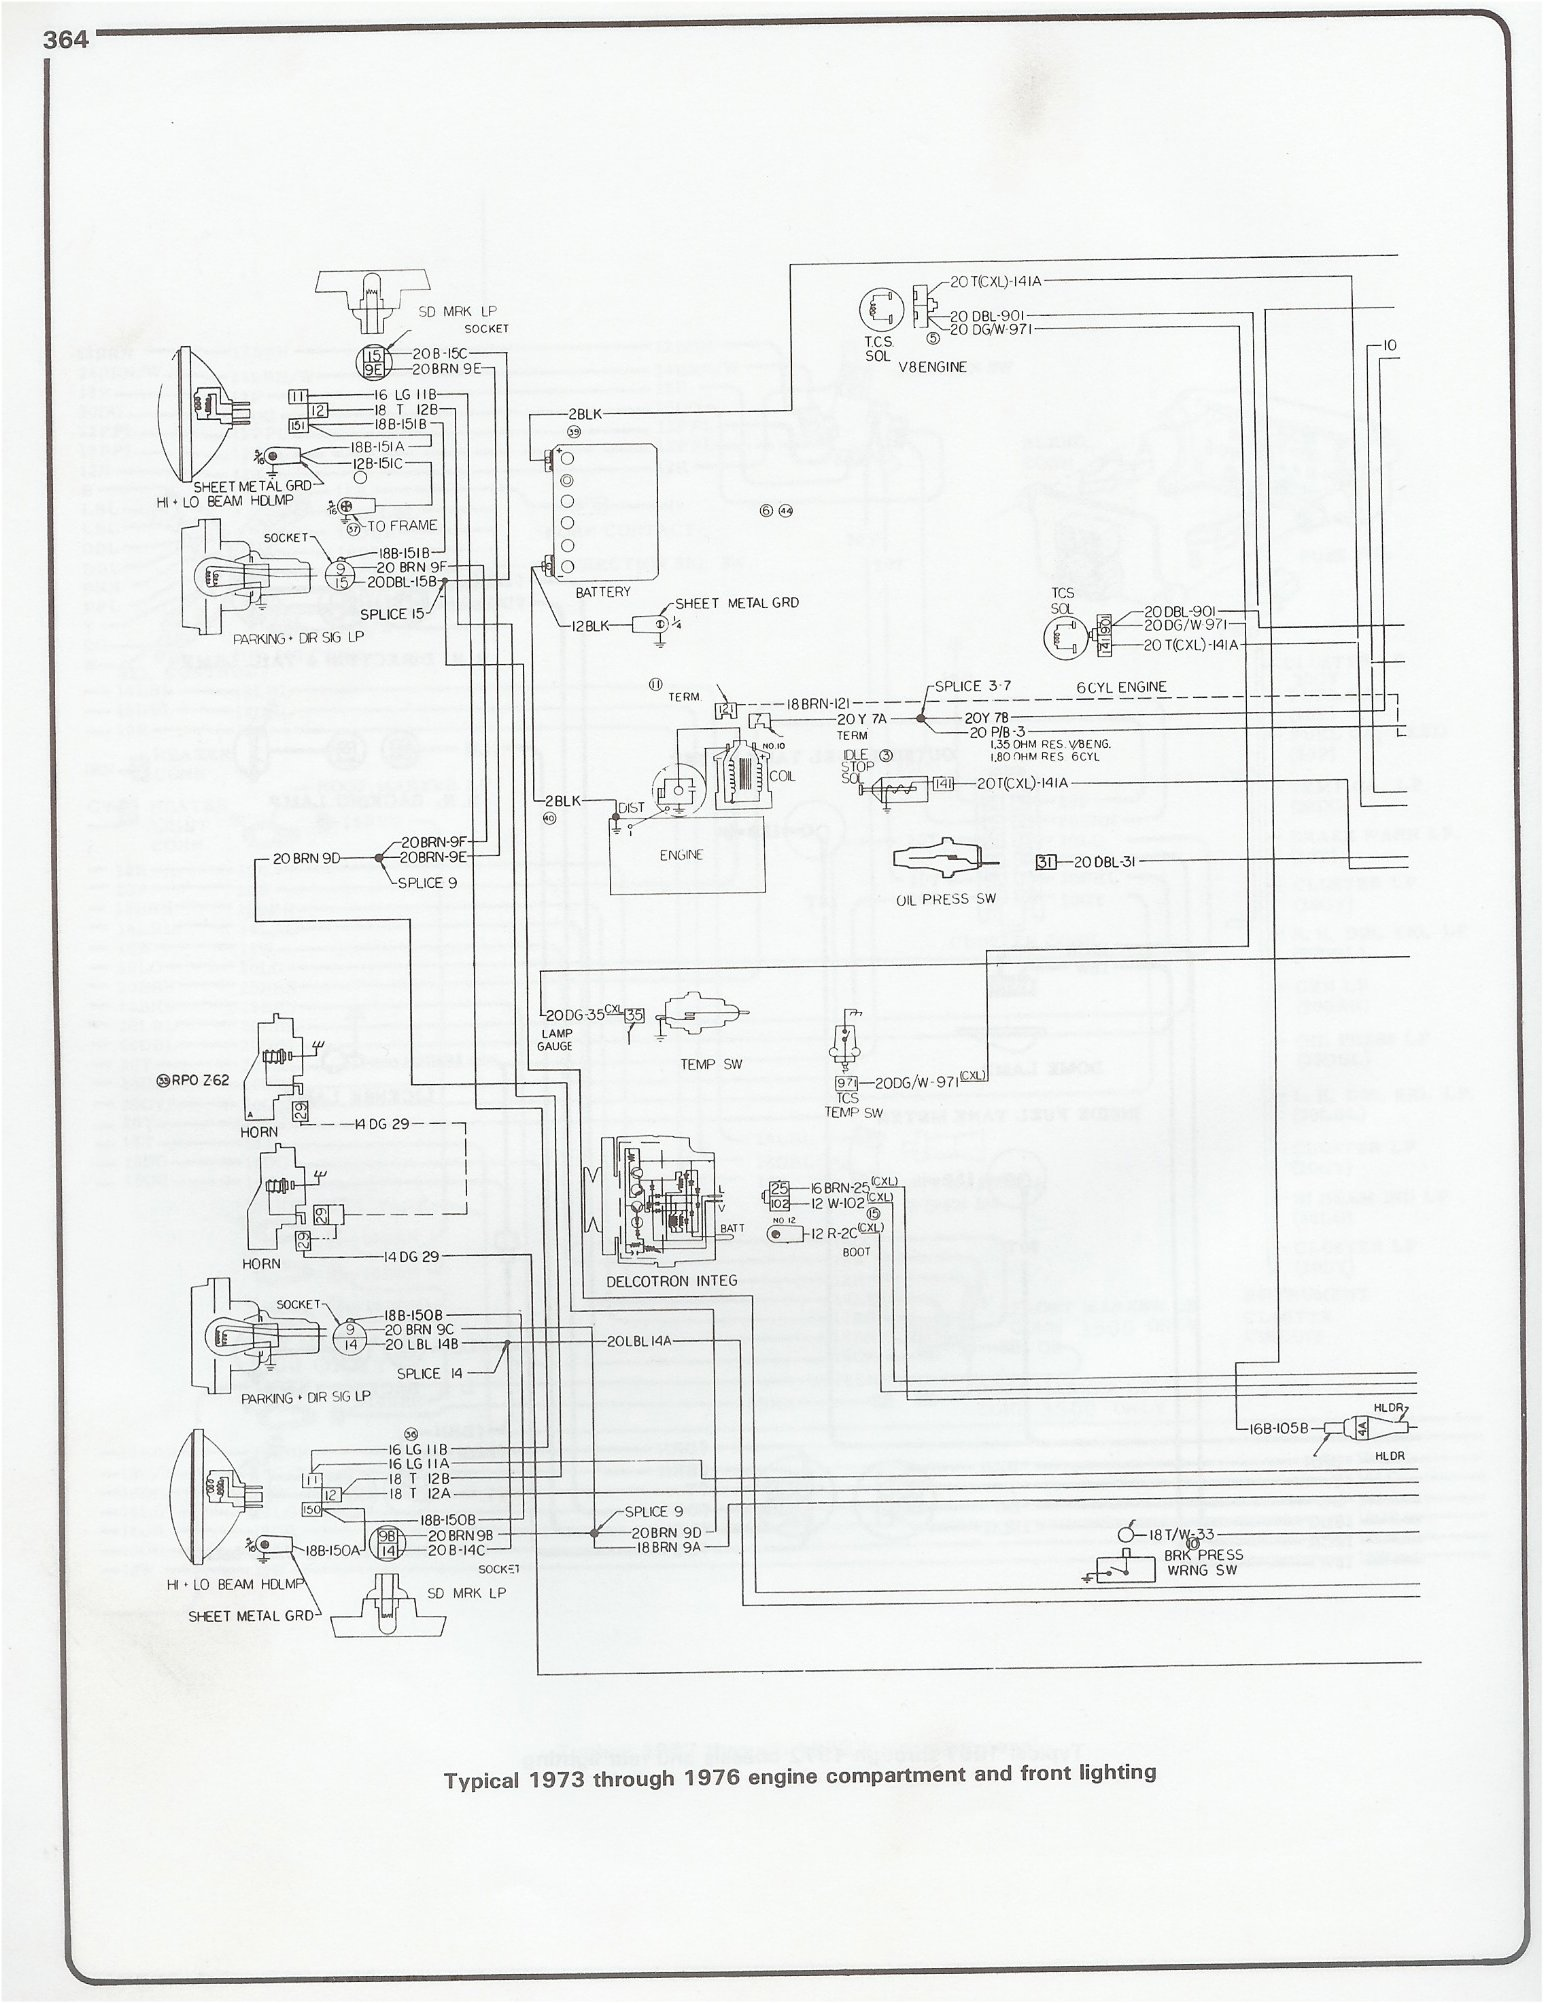 75 Chevy Wiring Diagram Just Data 2000 Chevrolet 76 C10 Schema 1987